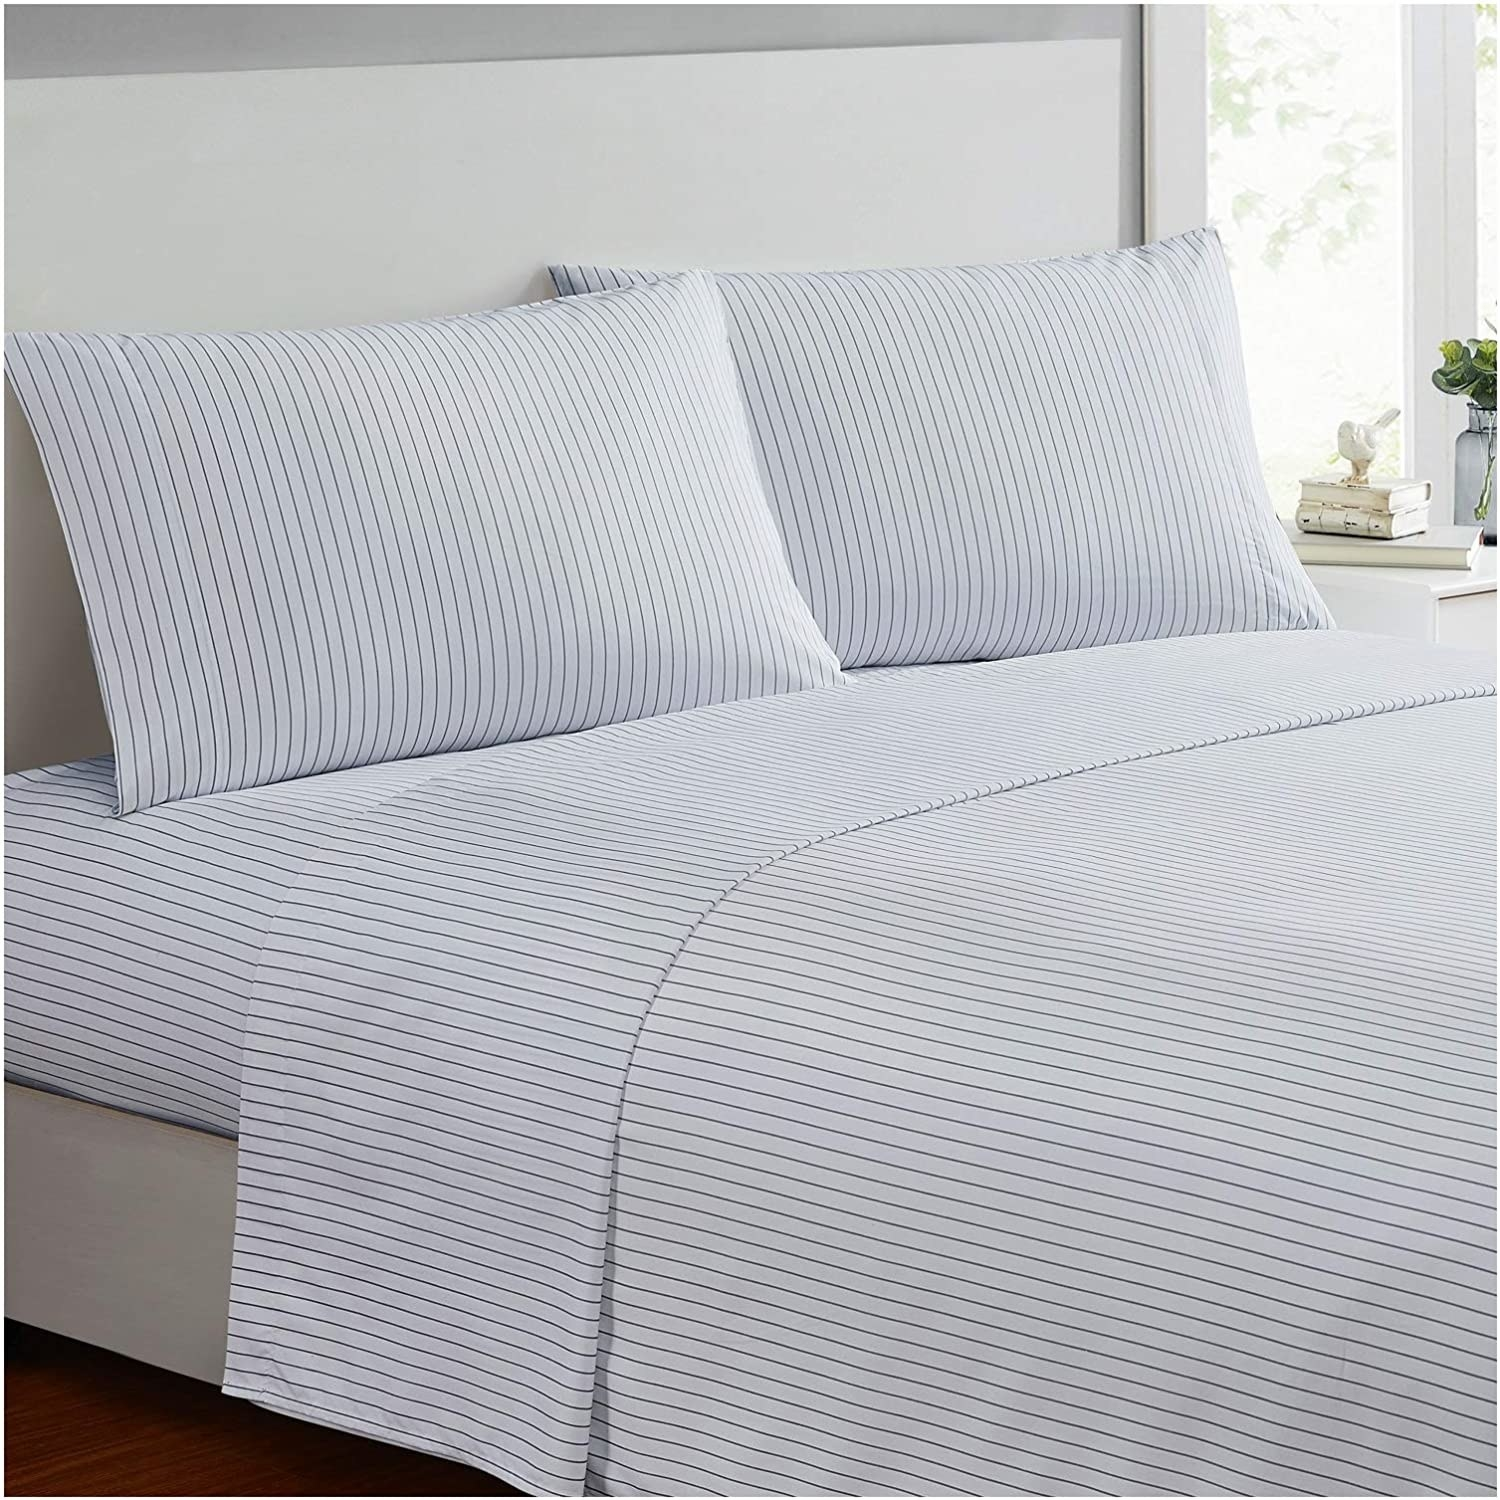 a bed showcasing white sheets with thin blue vertical stripes down them and matching pillowcases